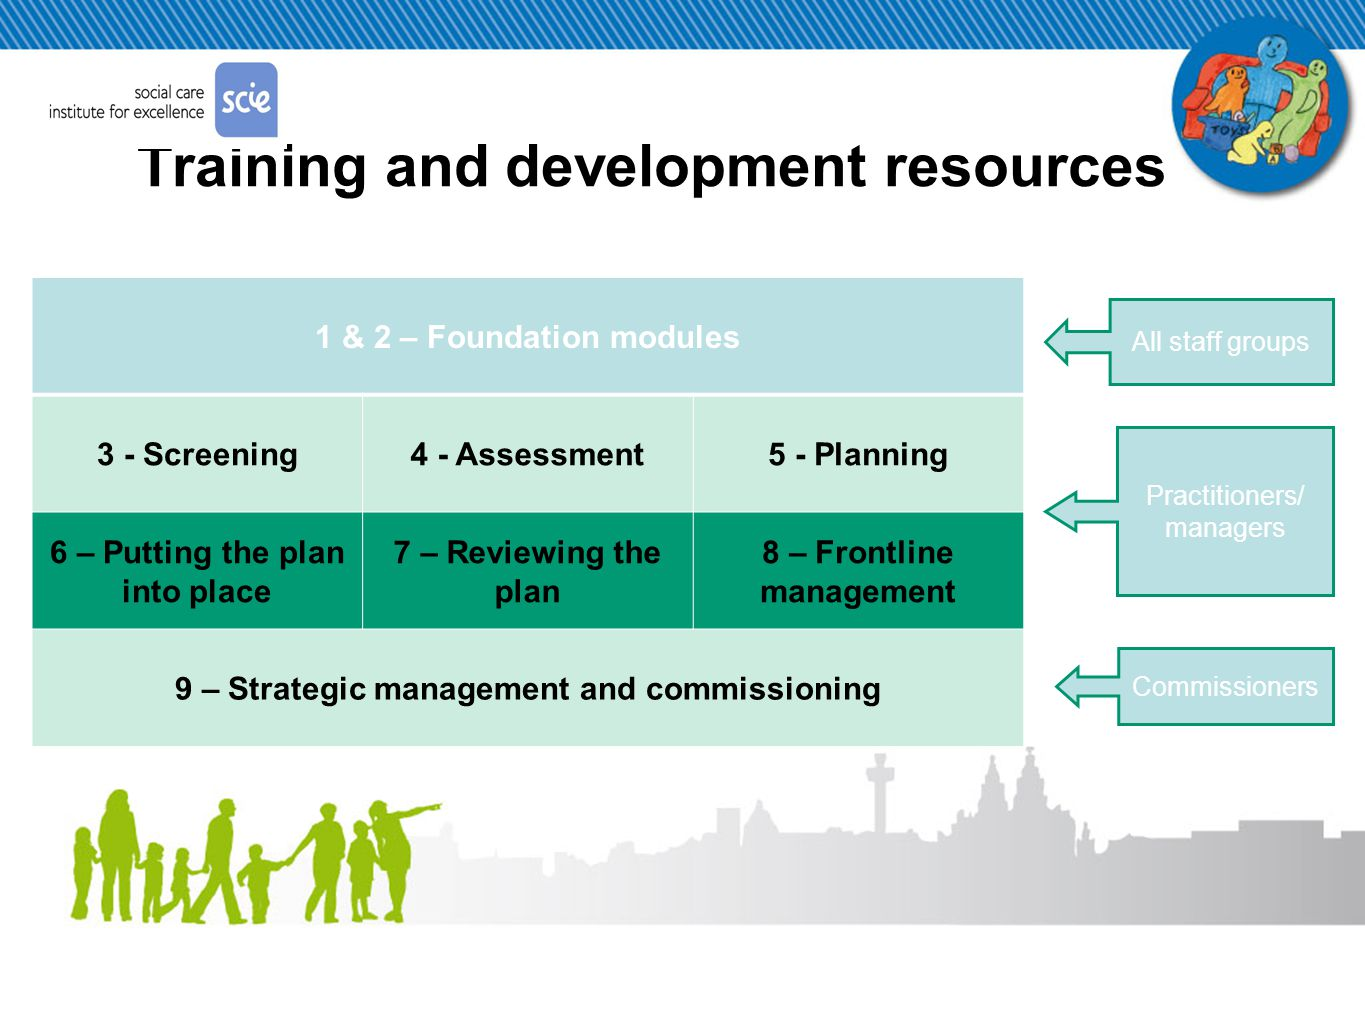 Training and development resources 1 & 2 – Foundation modules 3 - Screening4 - Assessment5 - Planning 6 – Putting the plan into place 7 – Reviewing the plan 8 – Frontline management 9 – Strategic management and commissioning All staff groups Practitioners/ managers Commissioners